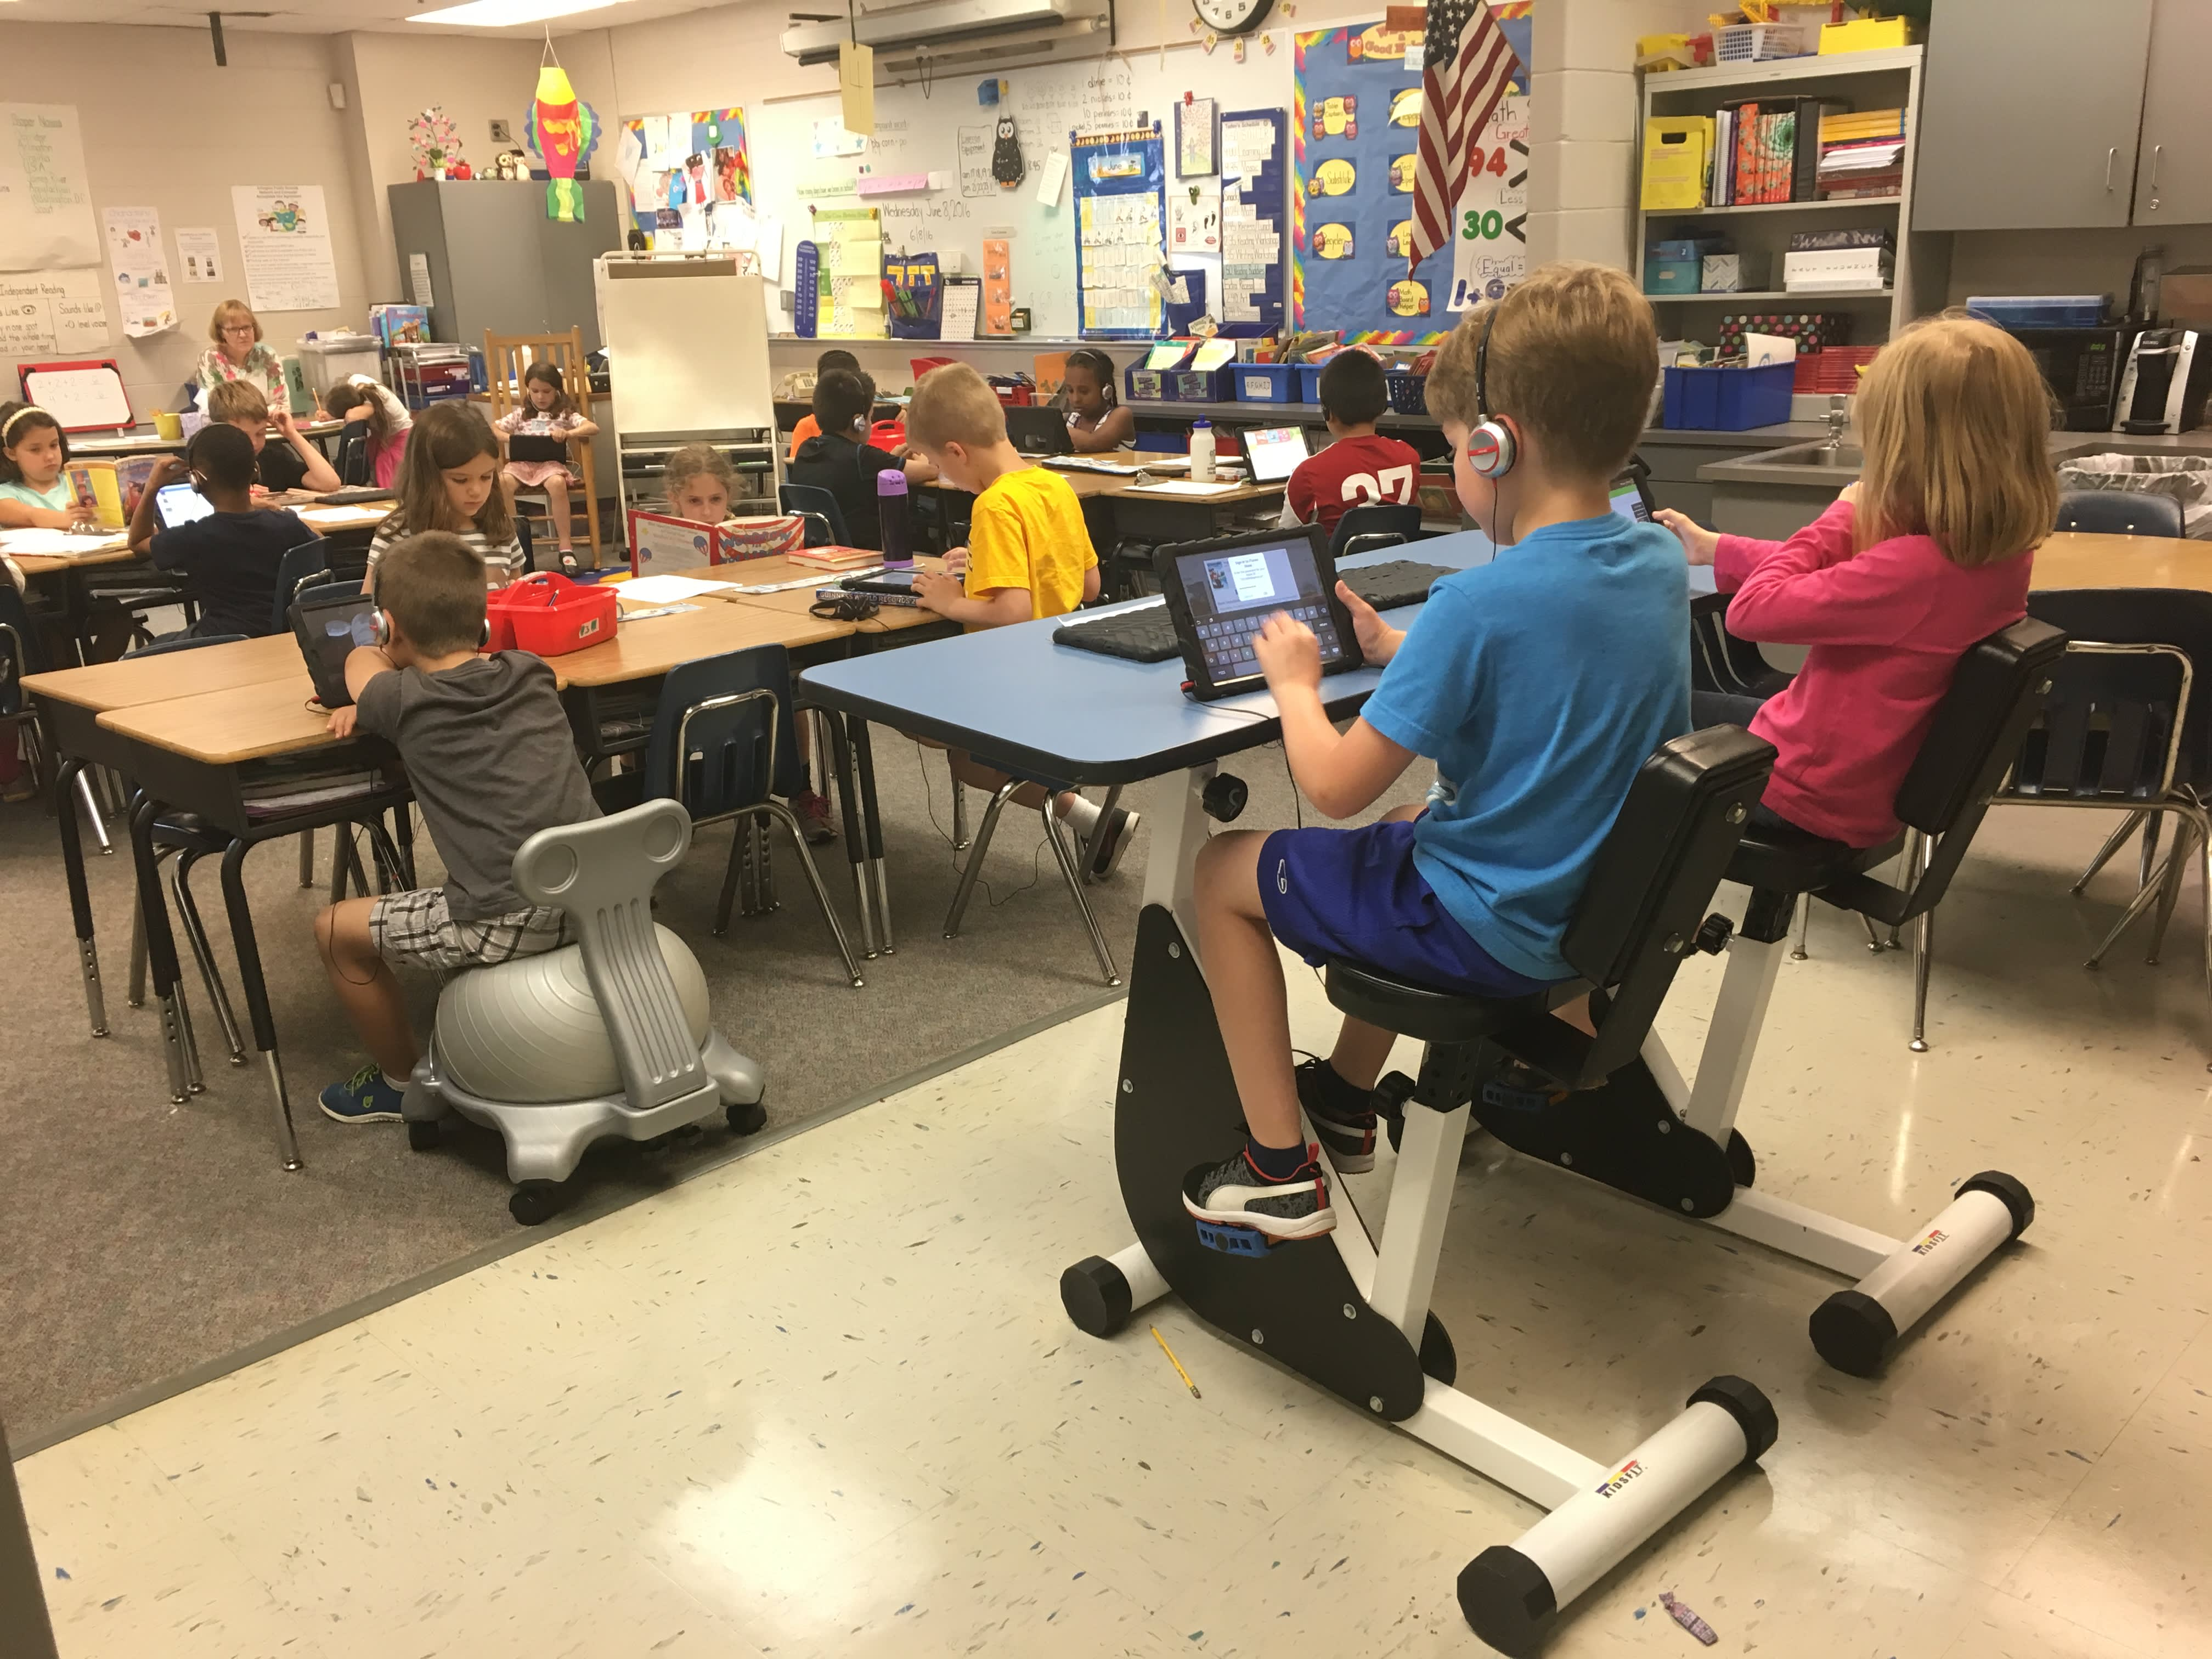 Fit classrooms: Exercise moves from gym to desk